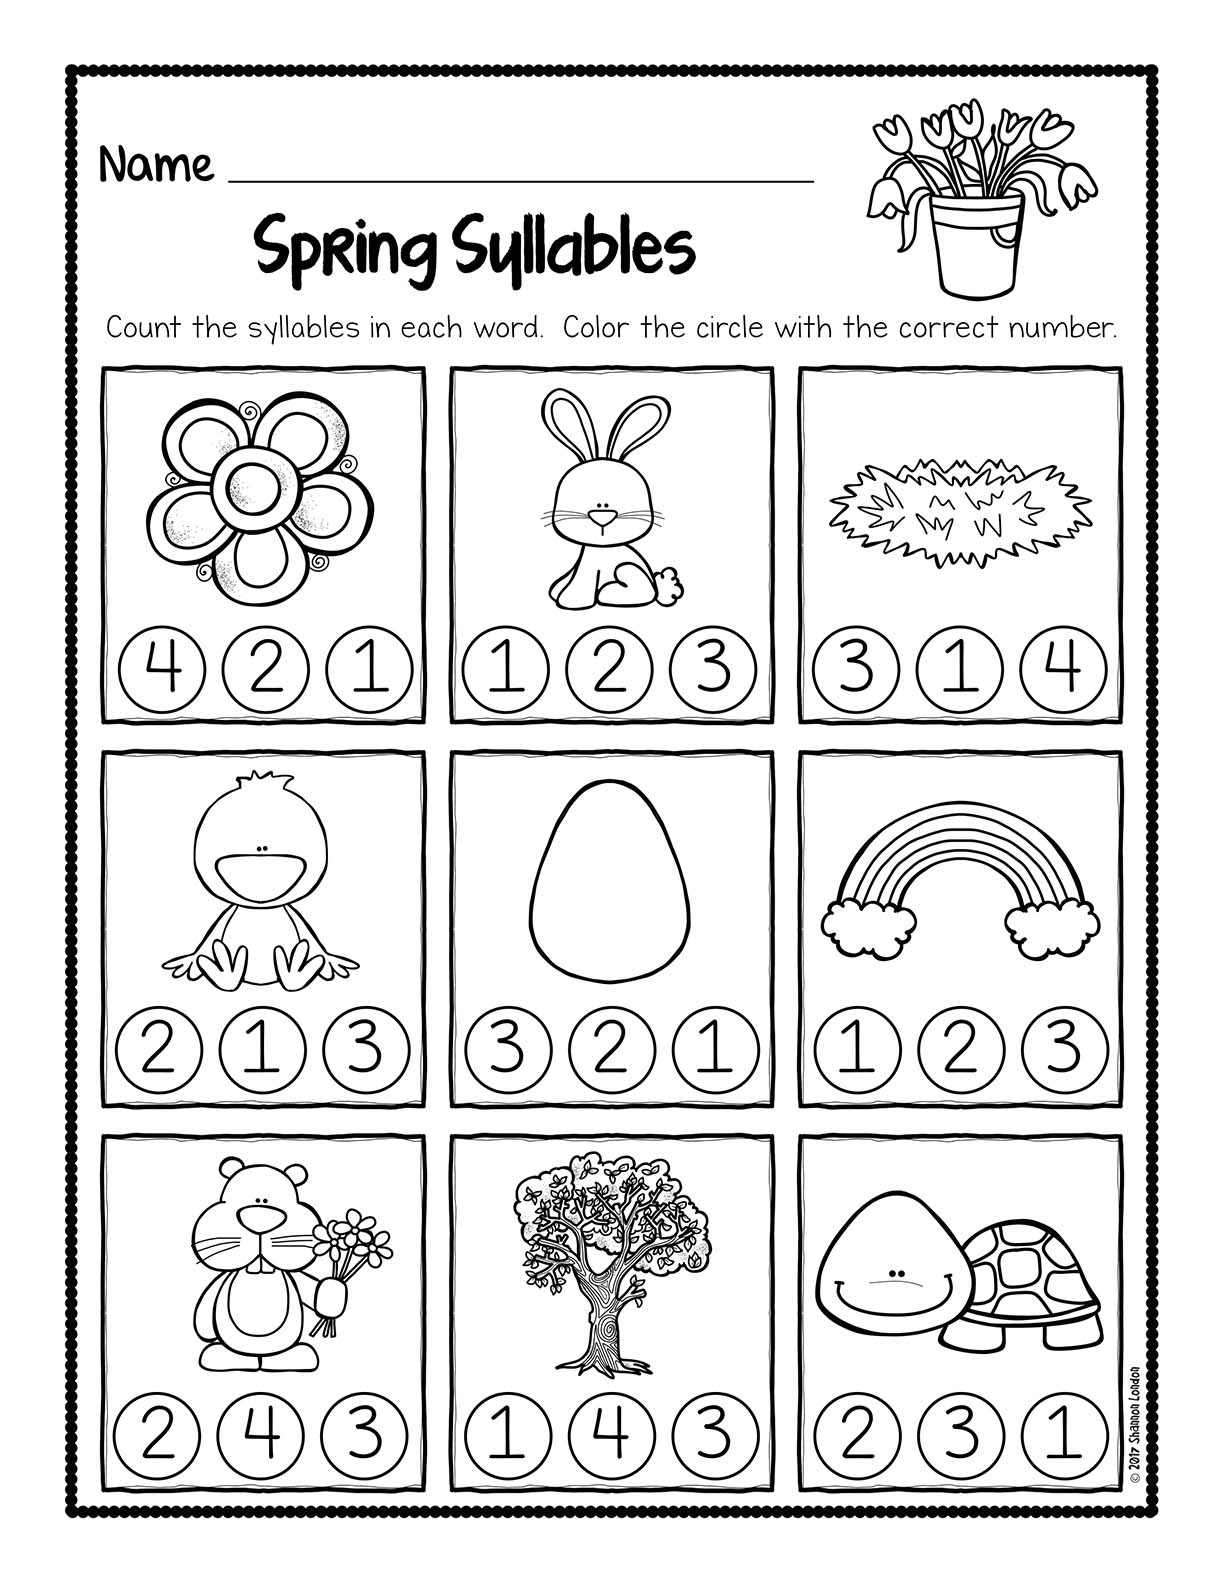 Taeacher Com Worksheets : Spring syllable worksheets unsecured the super teacher